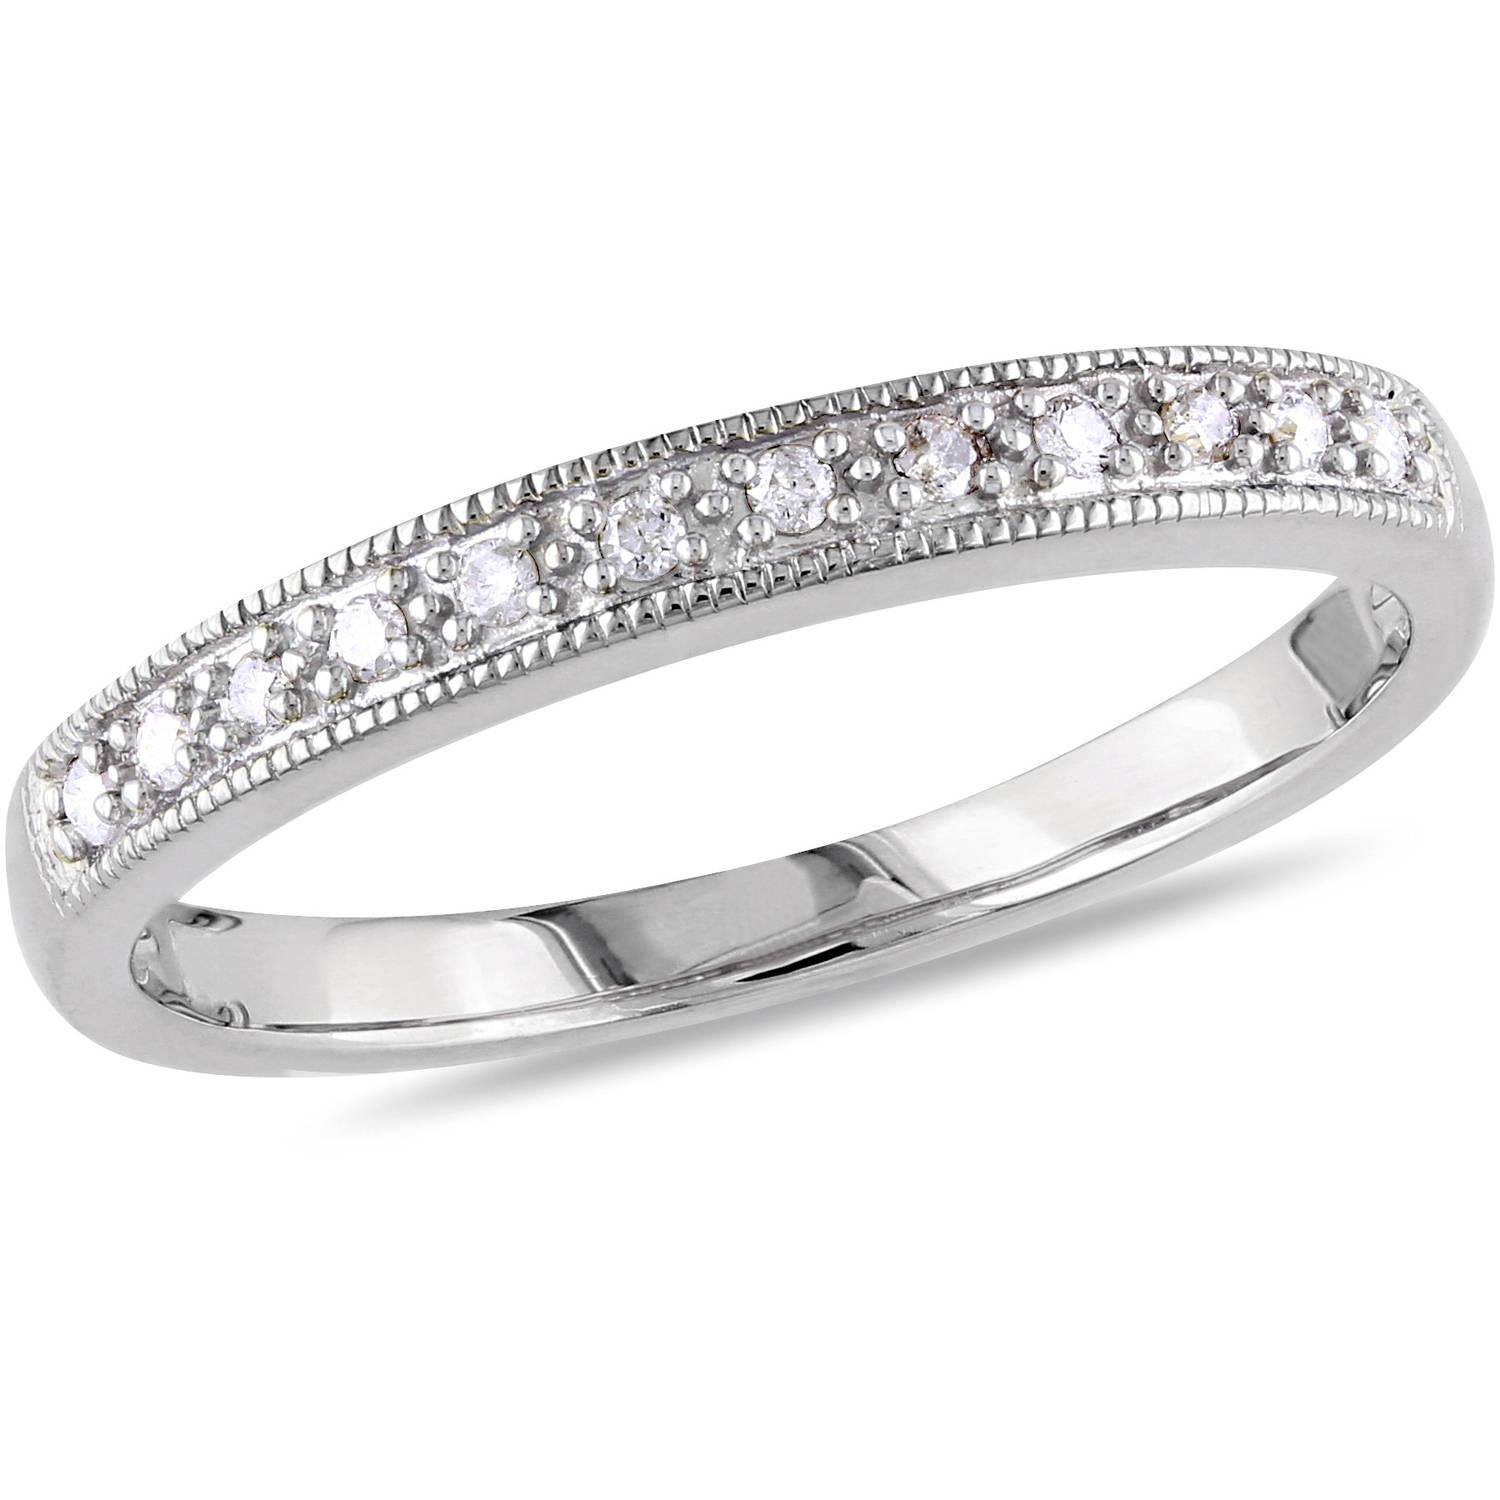 Miabella DiamondAccent 10kt White Gold Wedding Band Walmartcom